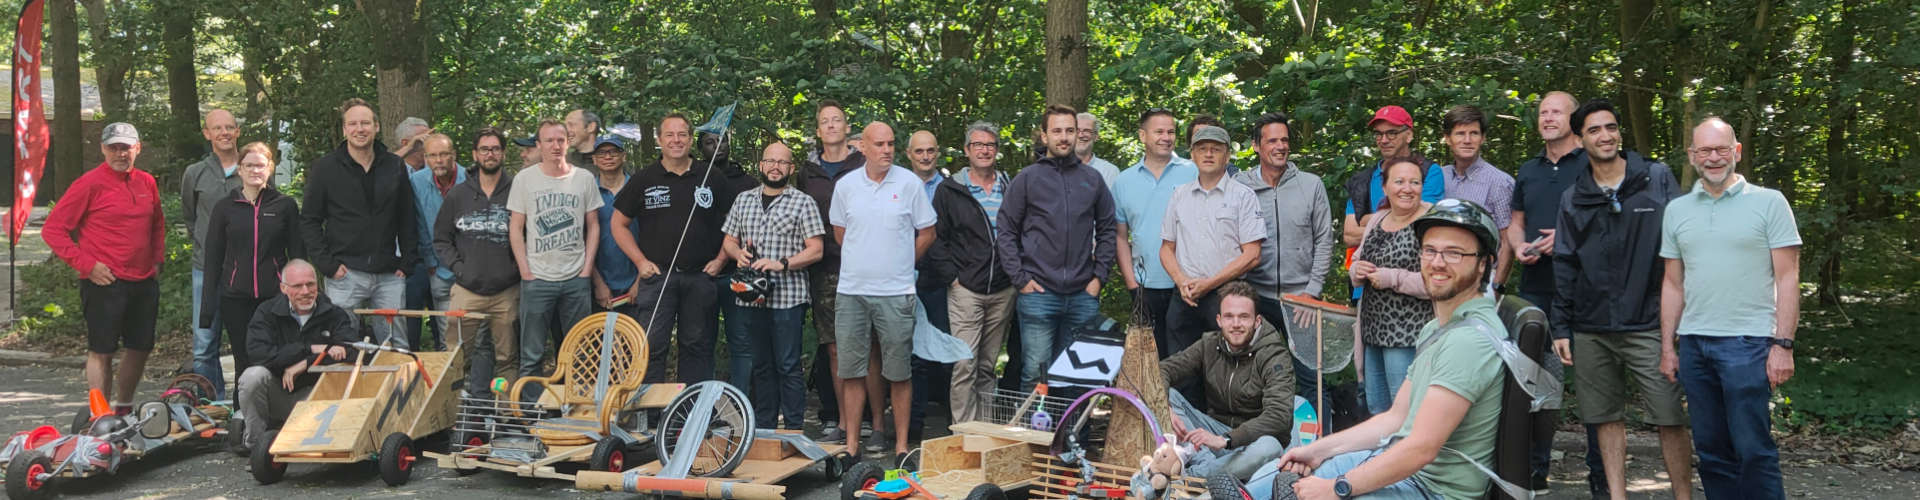 teambuilding noord-holland